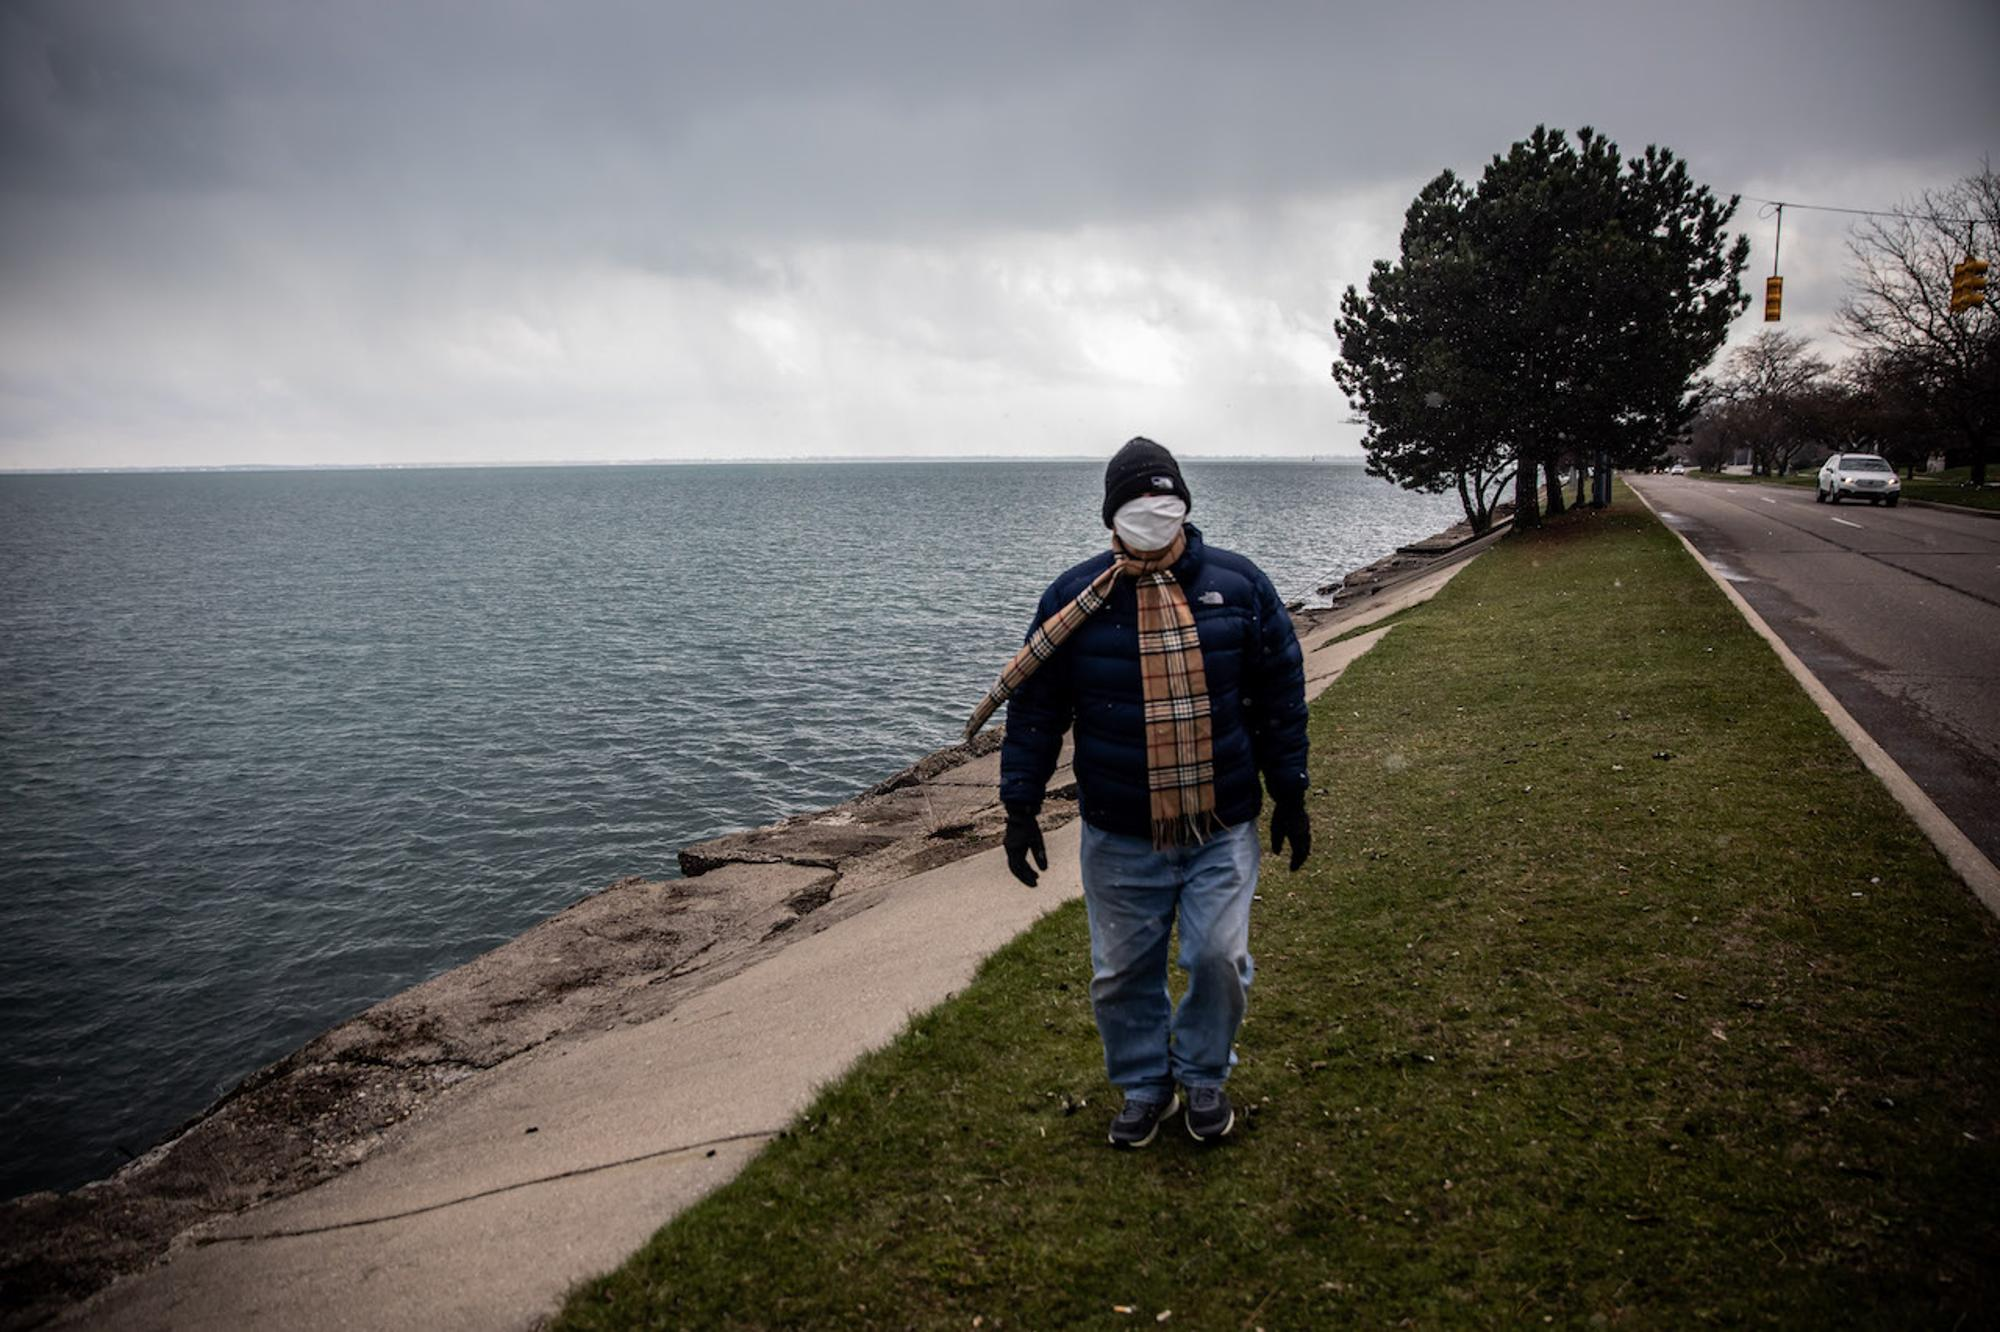 My dad, Tim Sacka, walks along Jefferson Ave. on the shores of Lake St. Clair. Normally, I would meet my parents at their home, but I have not entered their space since the quarantine began.Taken by Amy Sacka for WDET